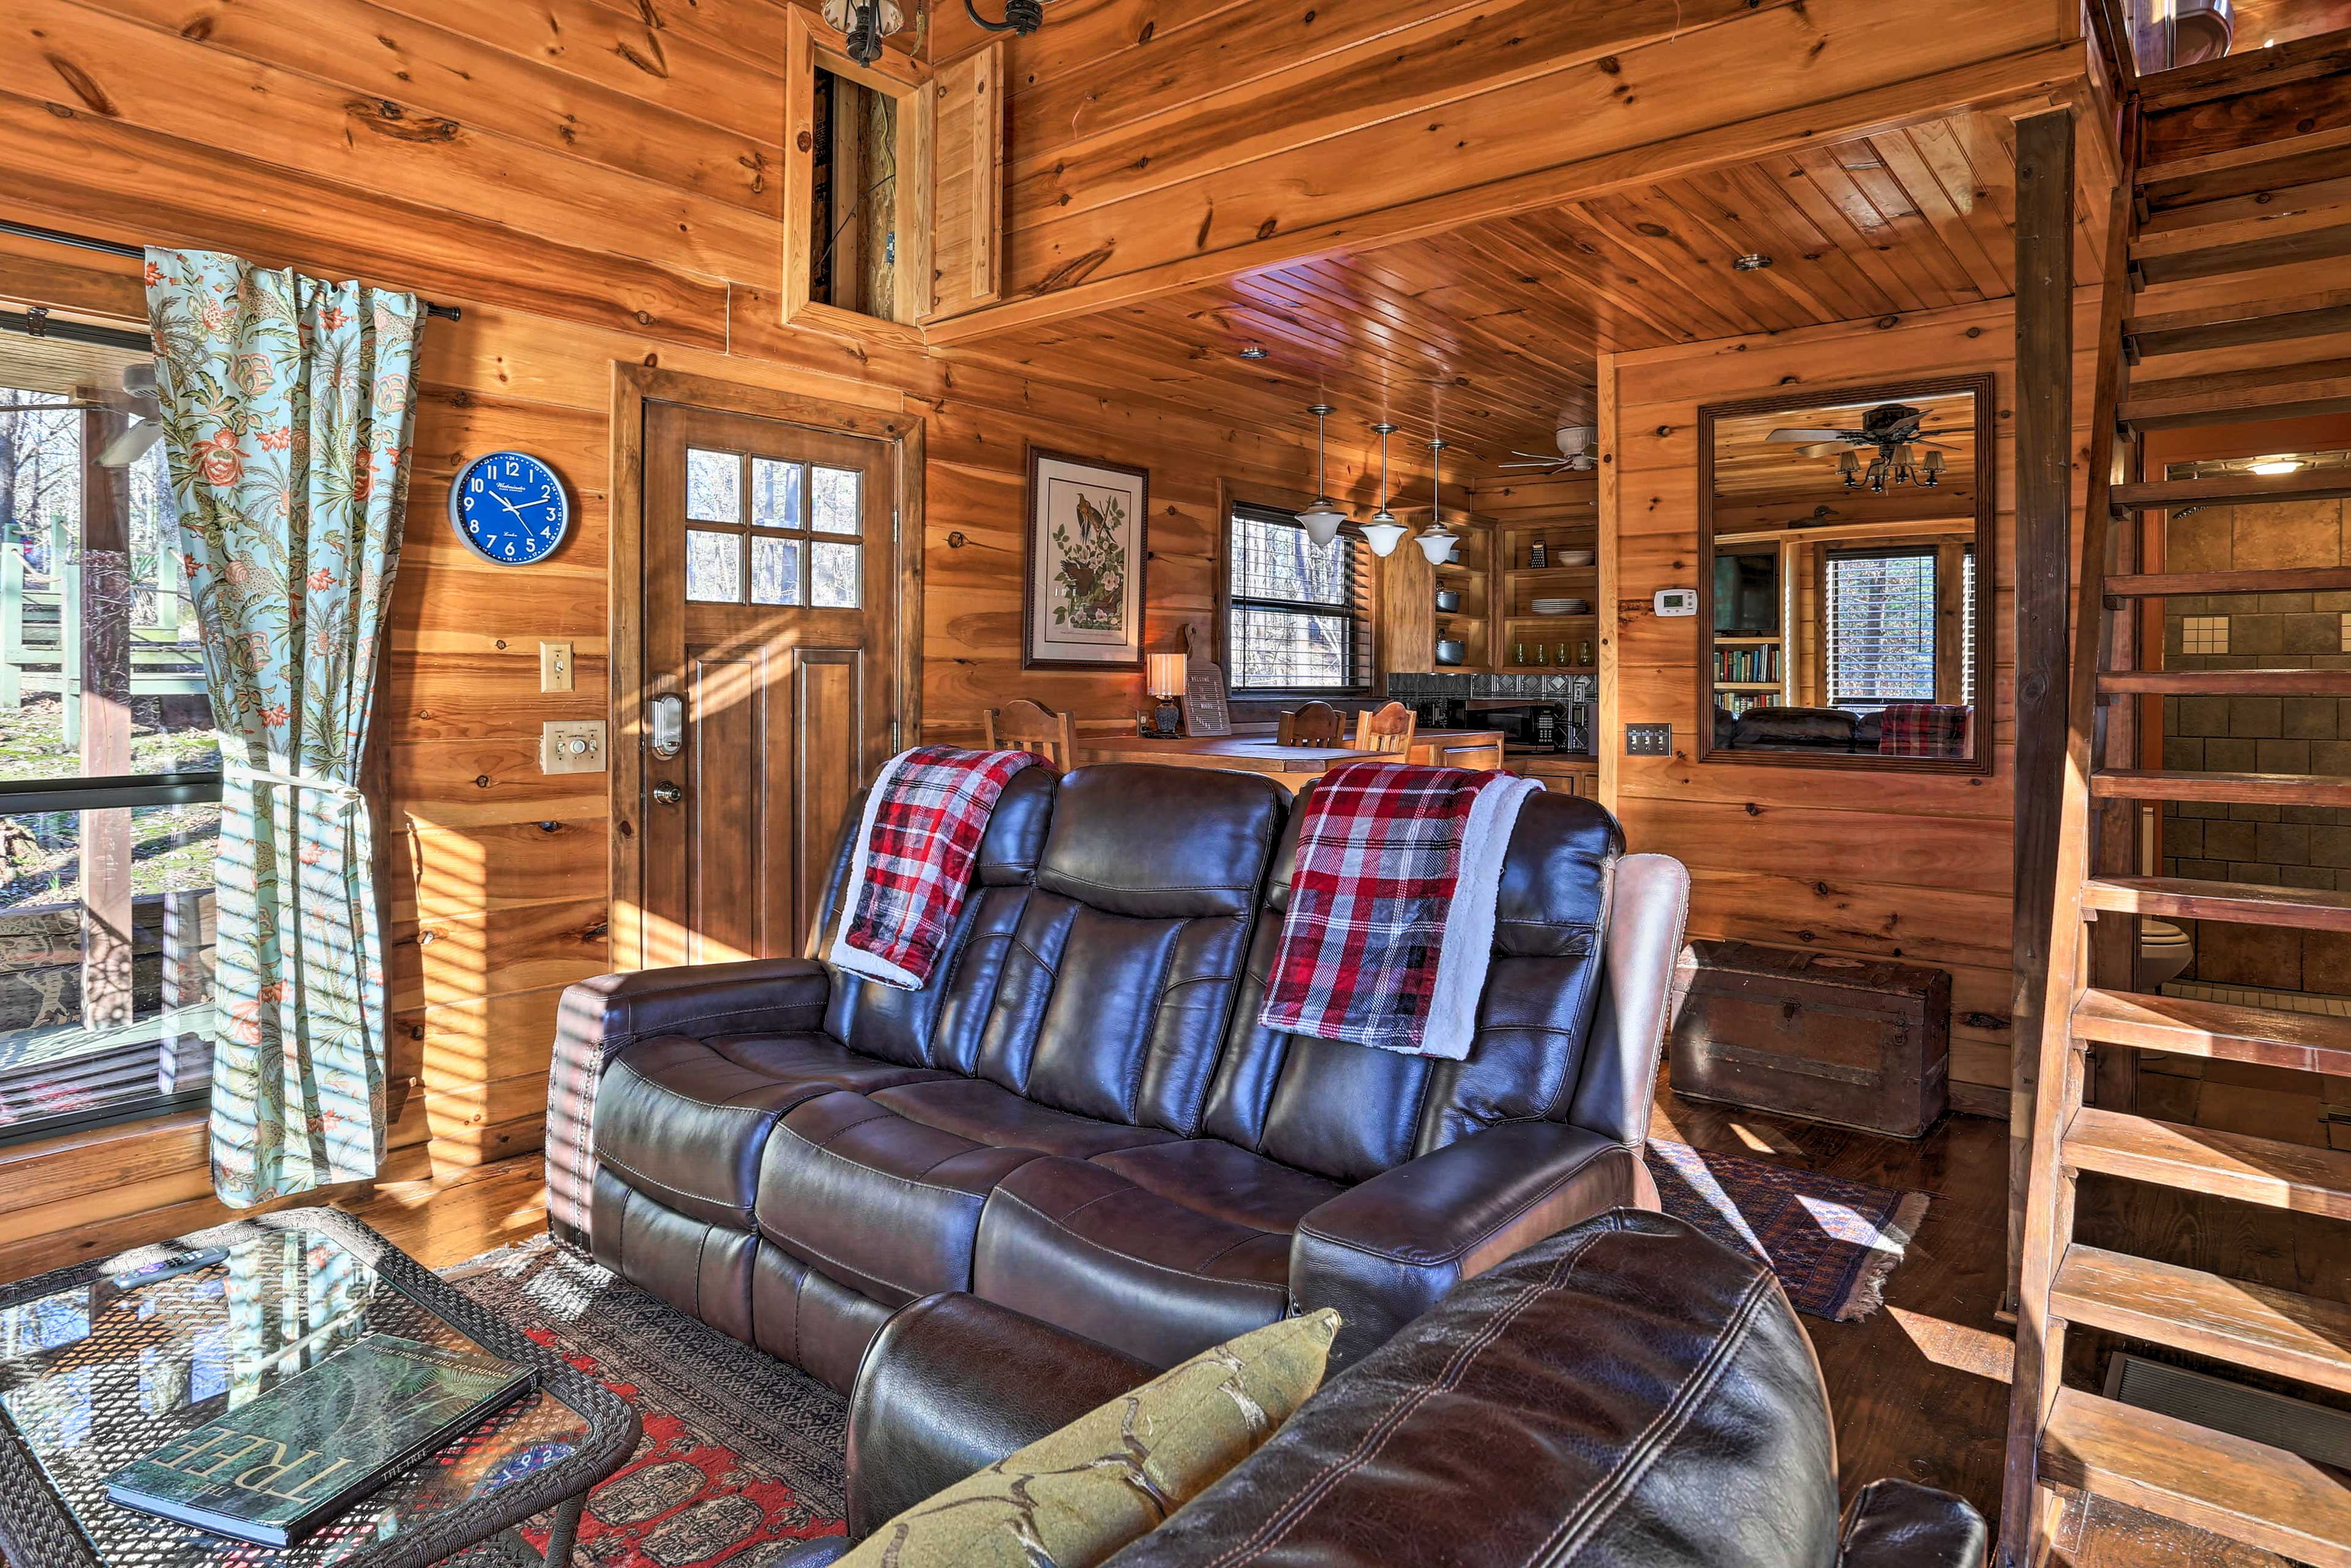 Natural light pours in through this cabin's large windows.